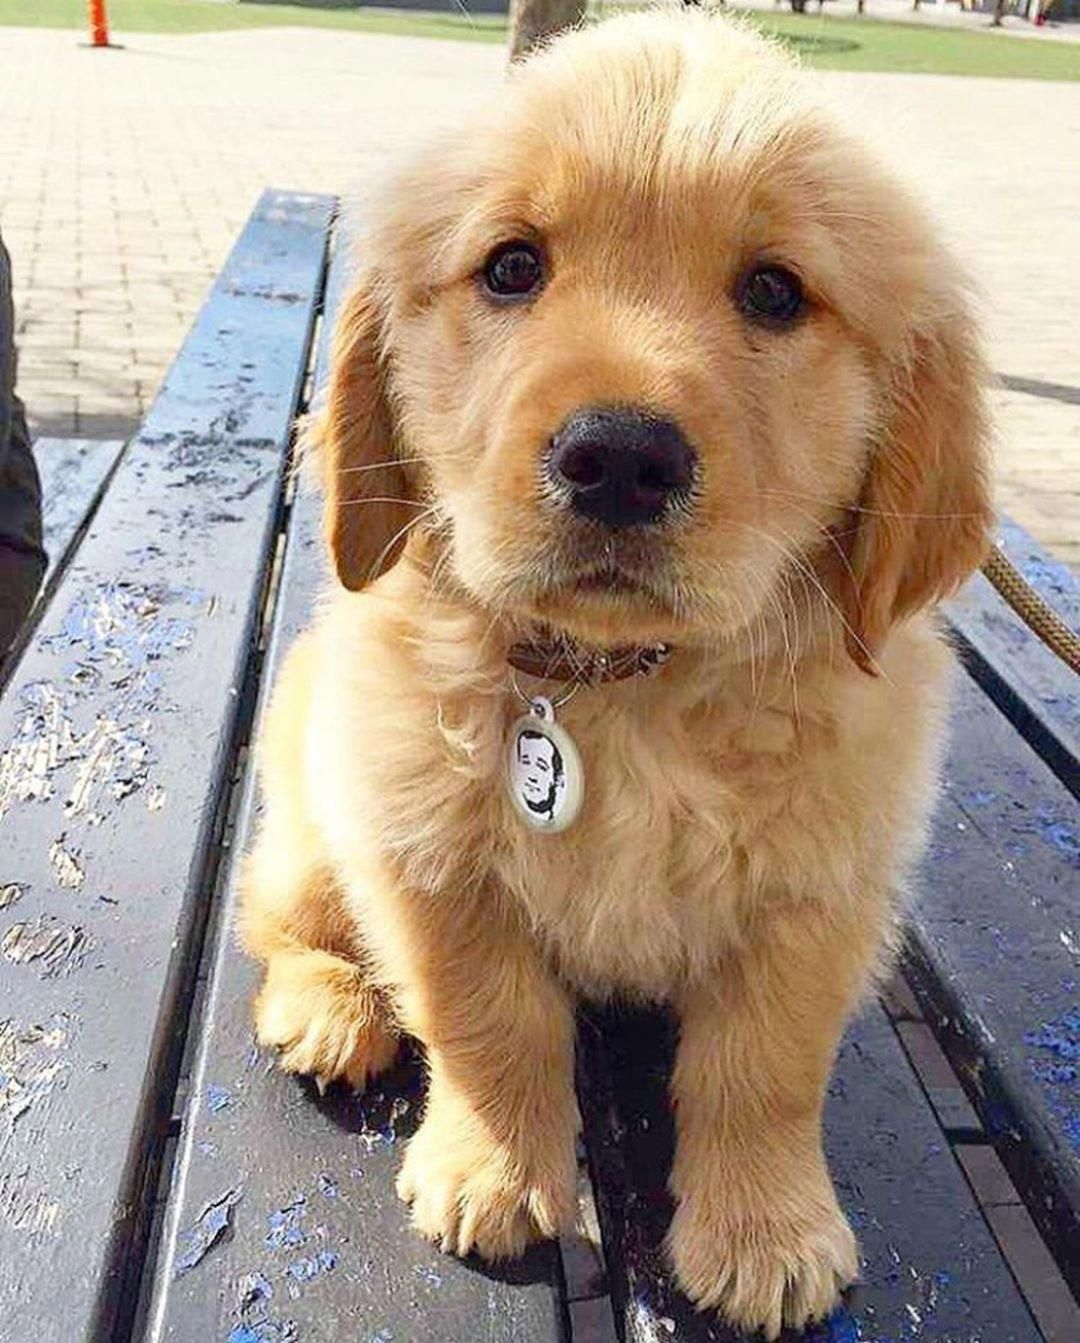 The Traits We All Like About The Devoted Golden Retriever Puppy